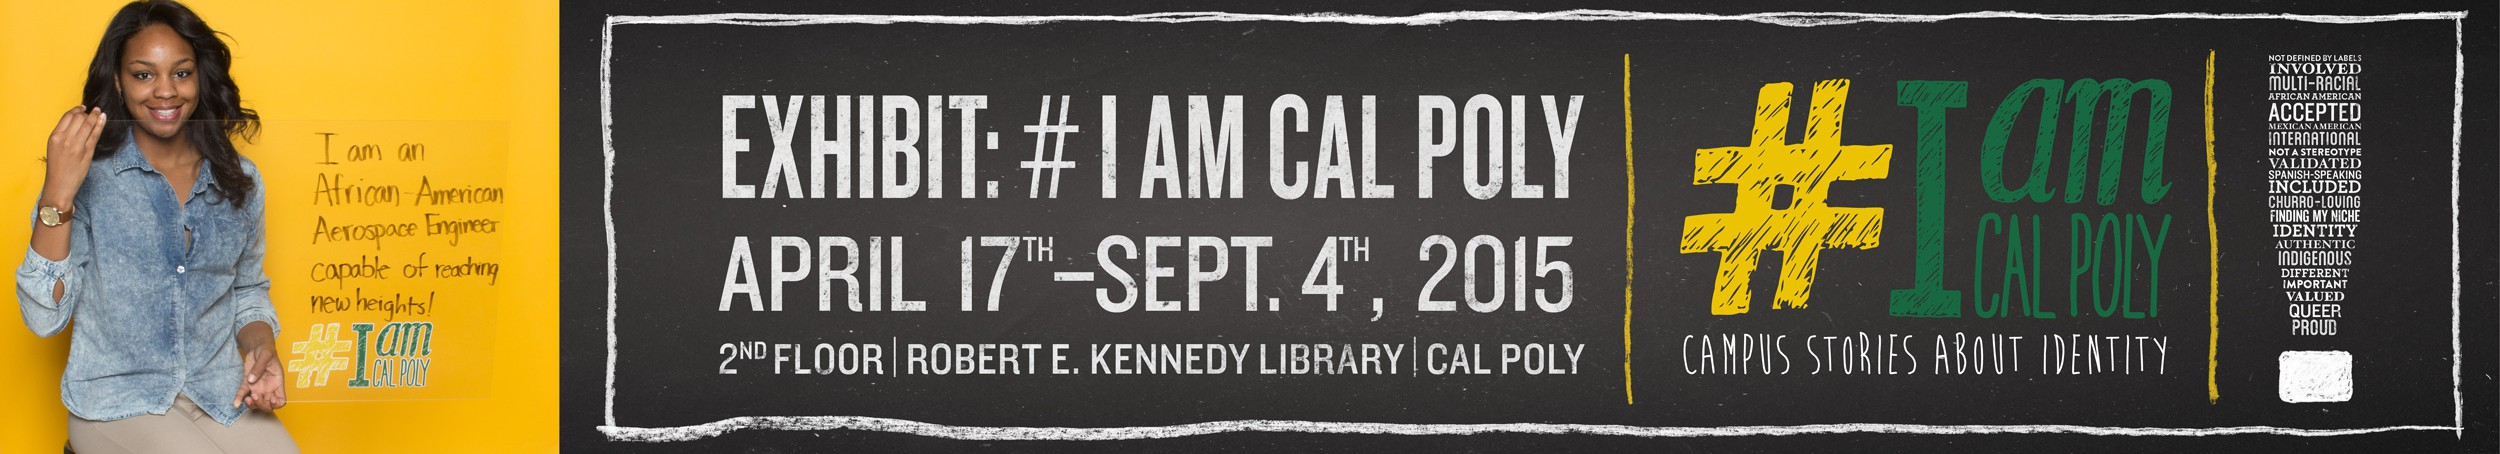 I am Cal Poly Exhibit